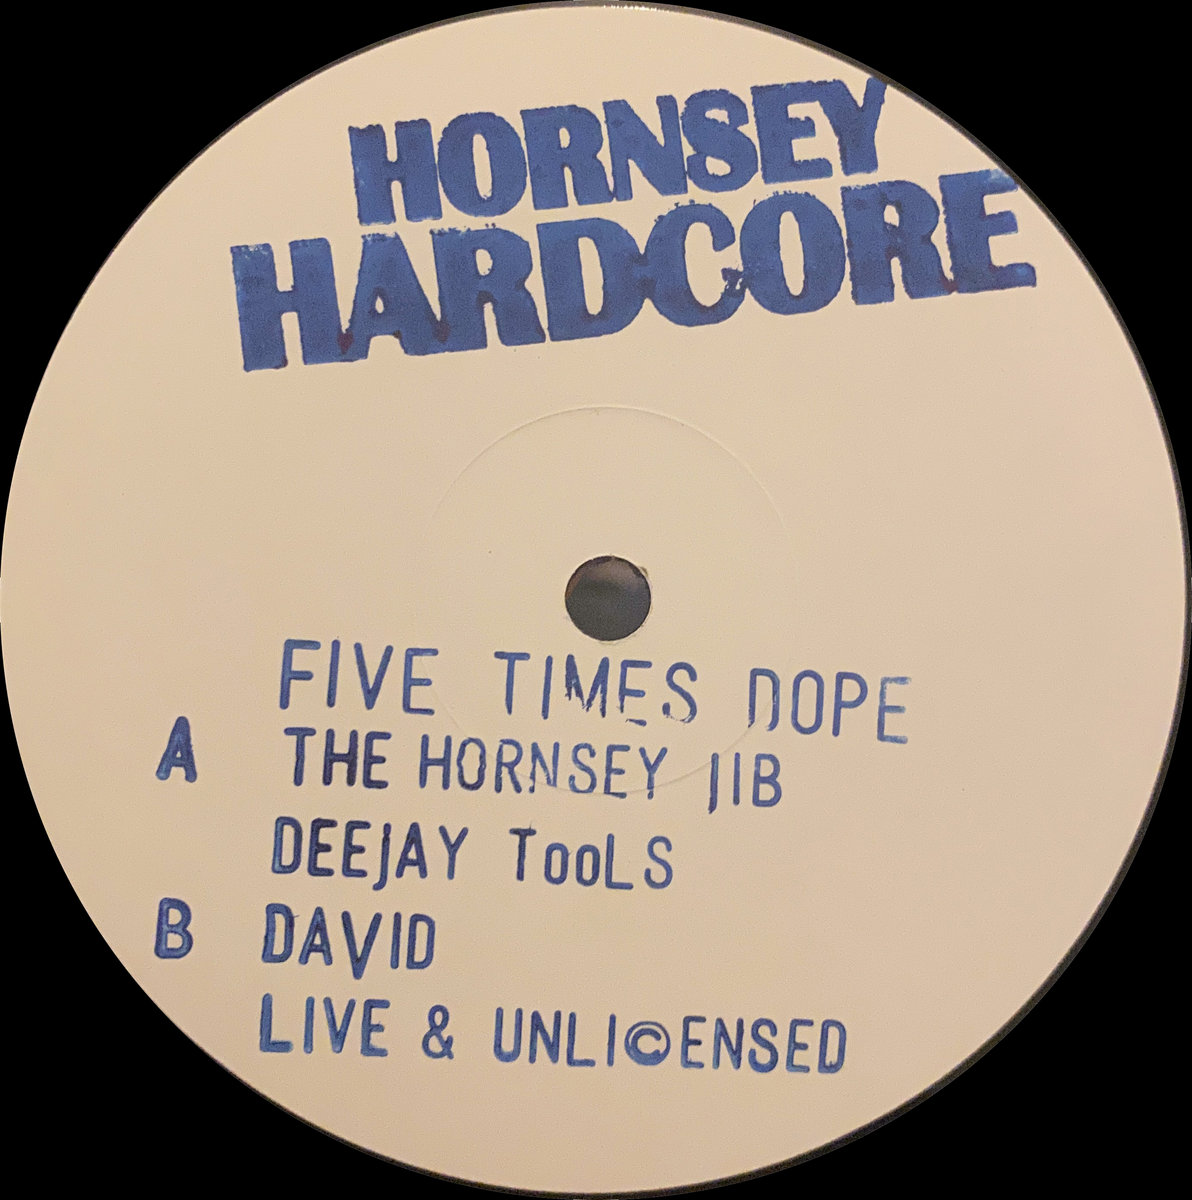 Hornsey Hardcore - Five Times Dope (2021)